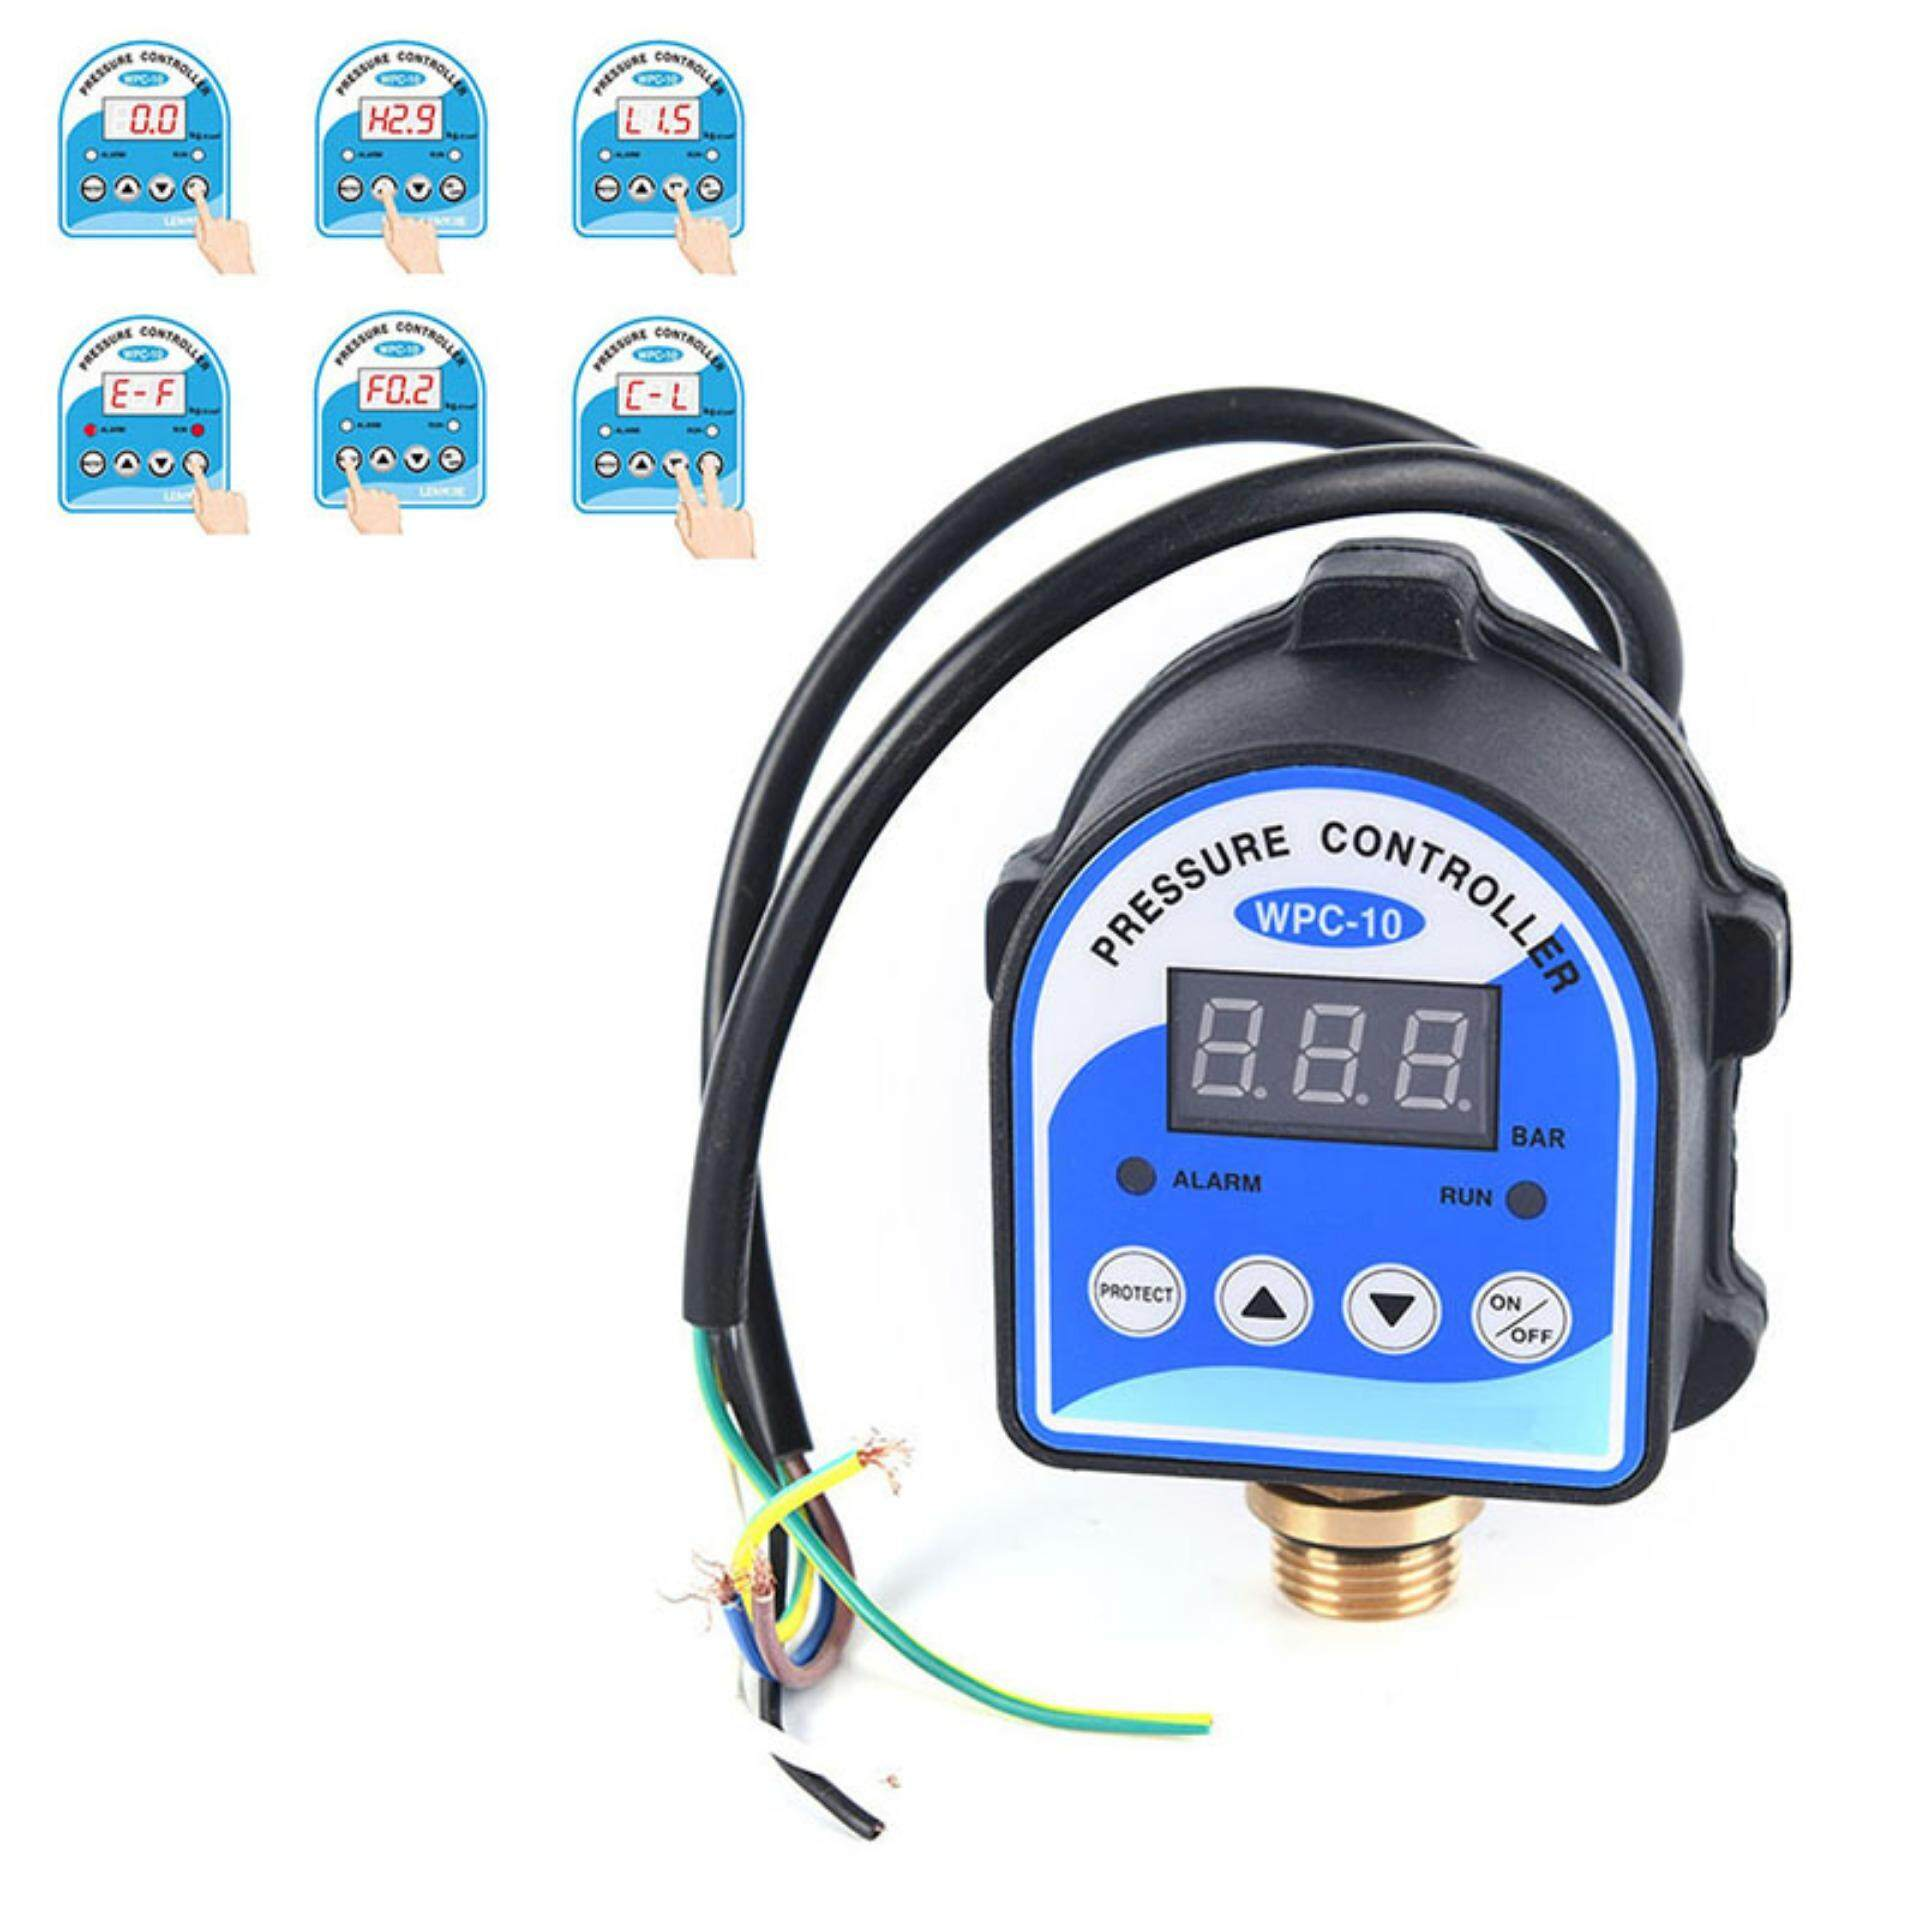 WPC-10 Digital Water Pressure Switch Digital Display for Water Pump